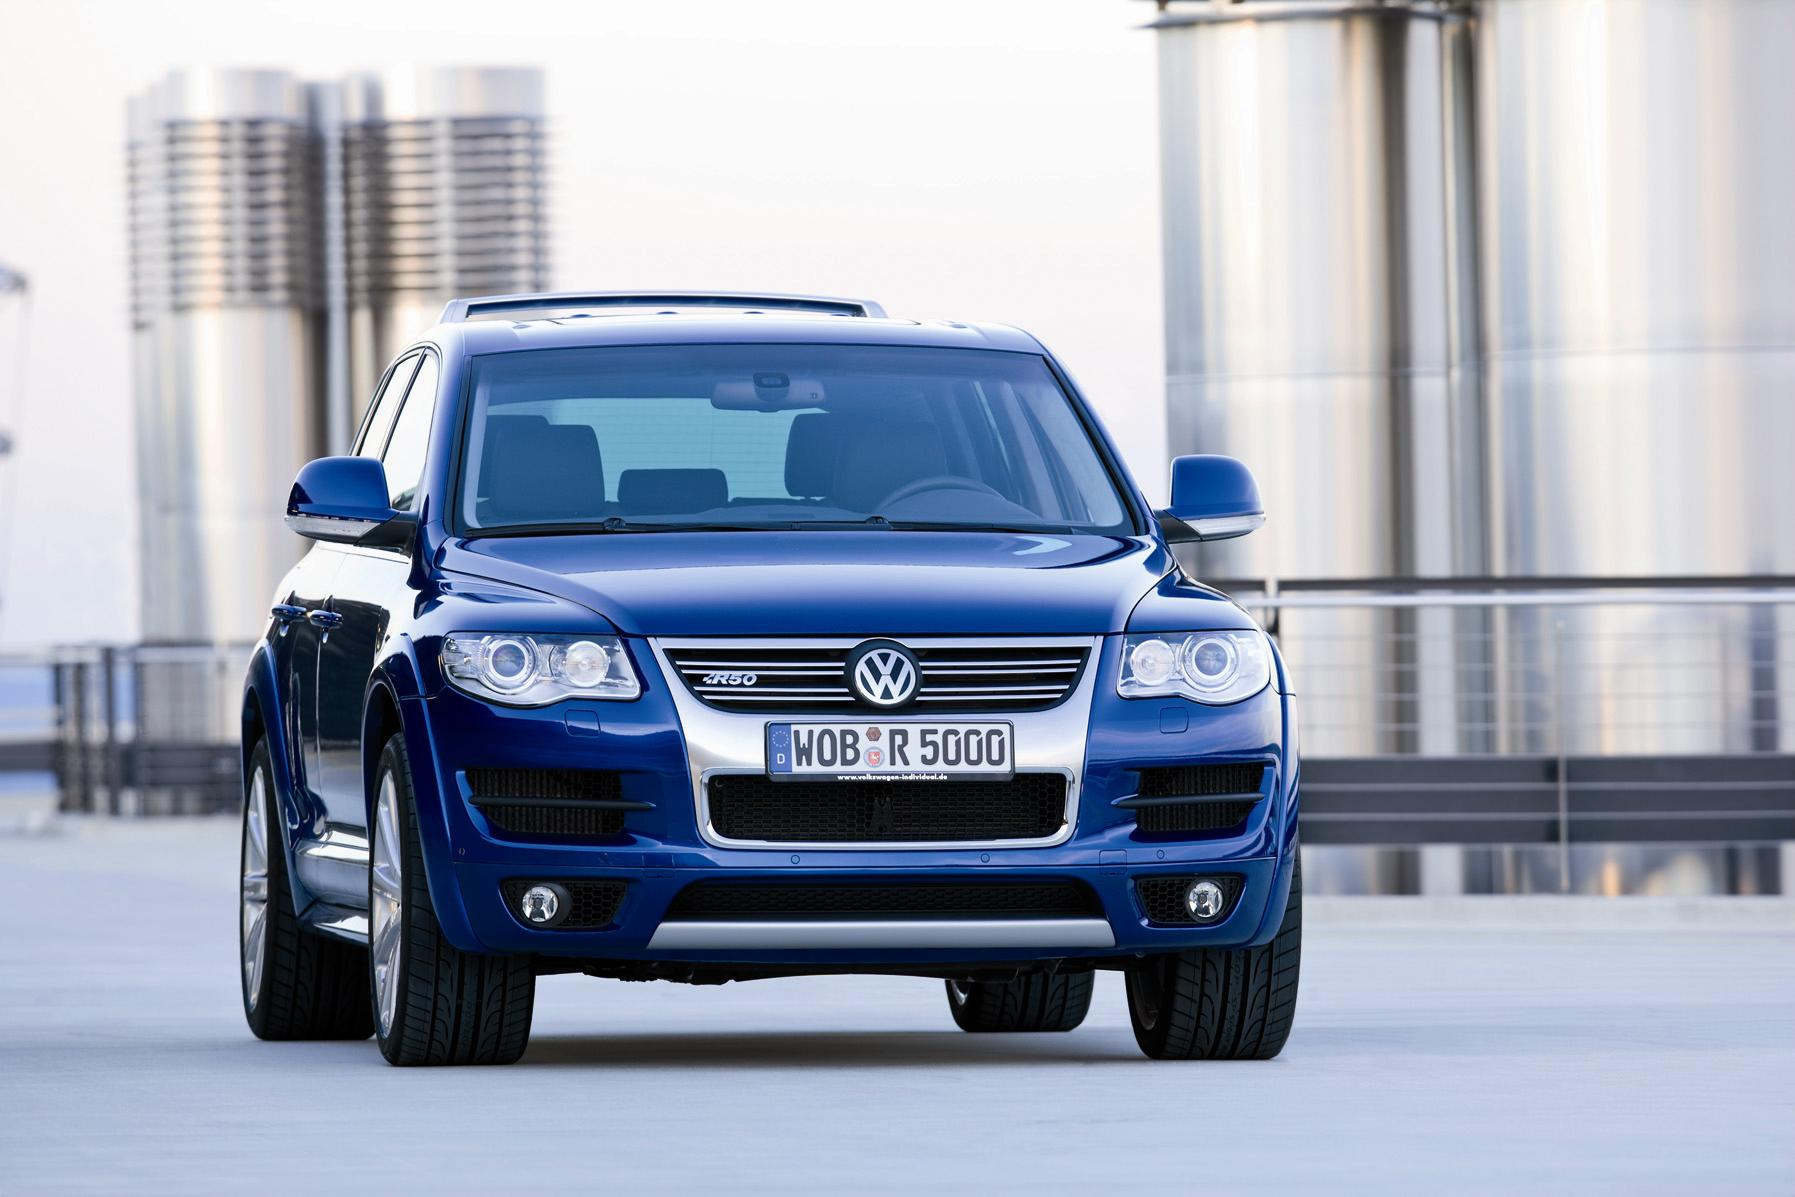 2008 Volkswagen Touareg R50 Top Speed